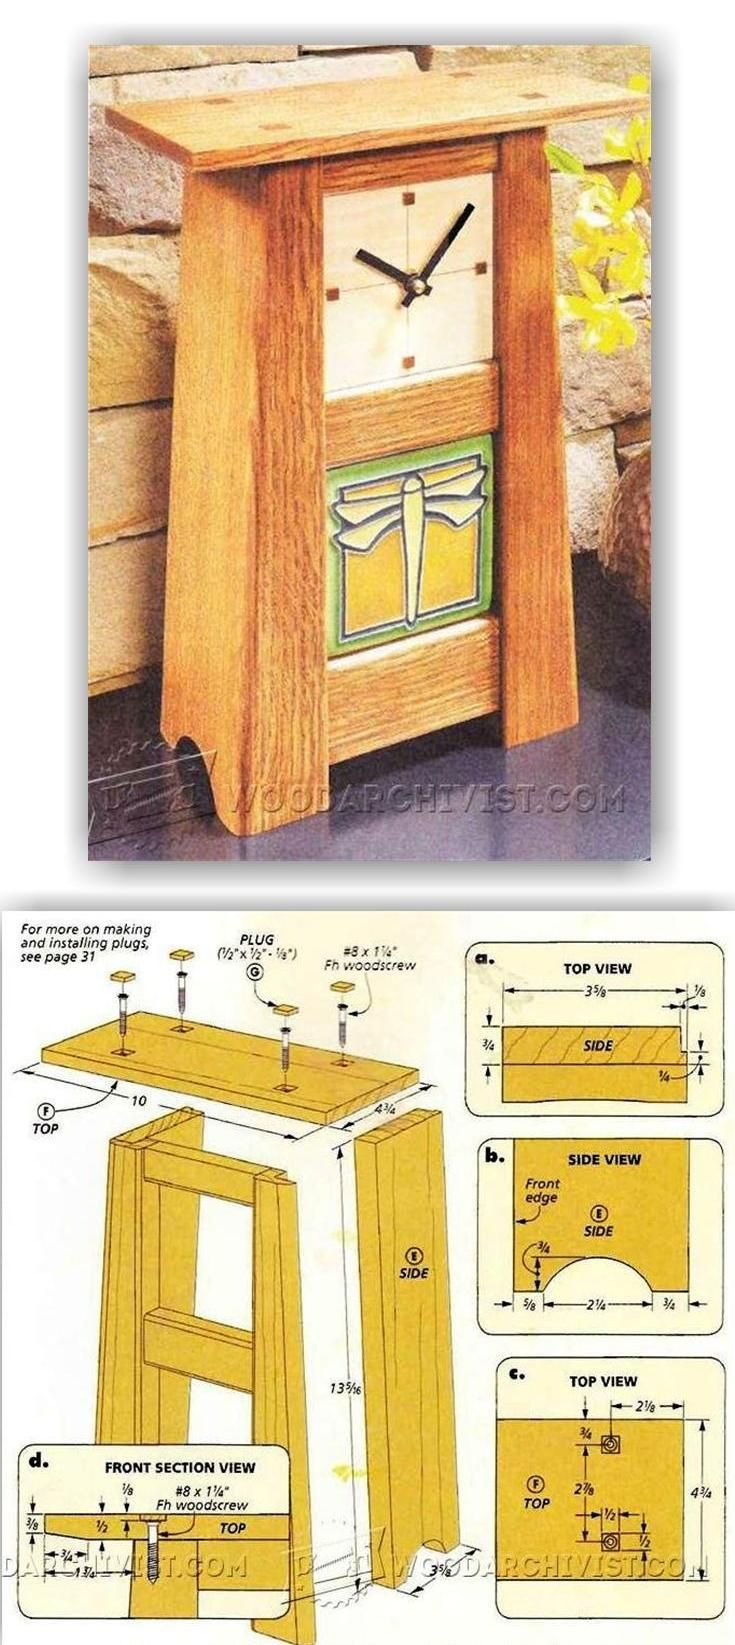 Craftsman Clock - Woodworking Plans and Projects | WoodArchivist.com